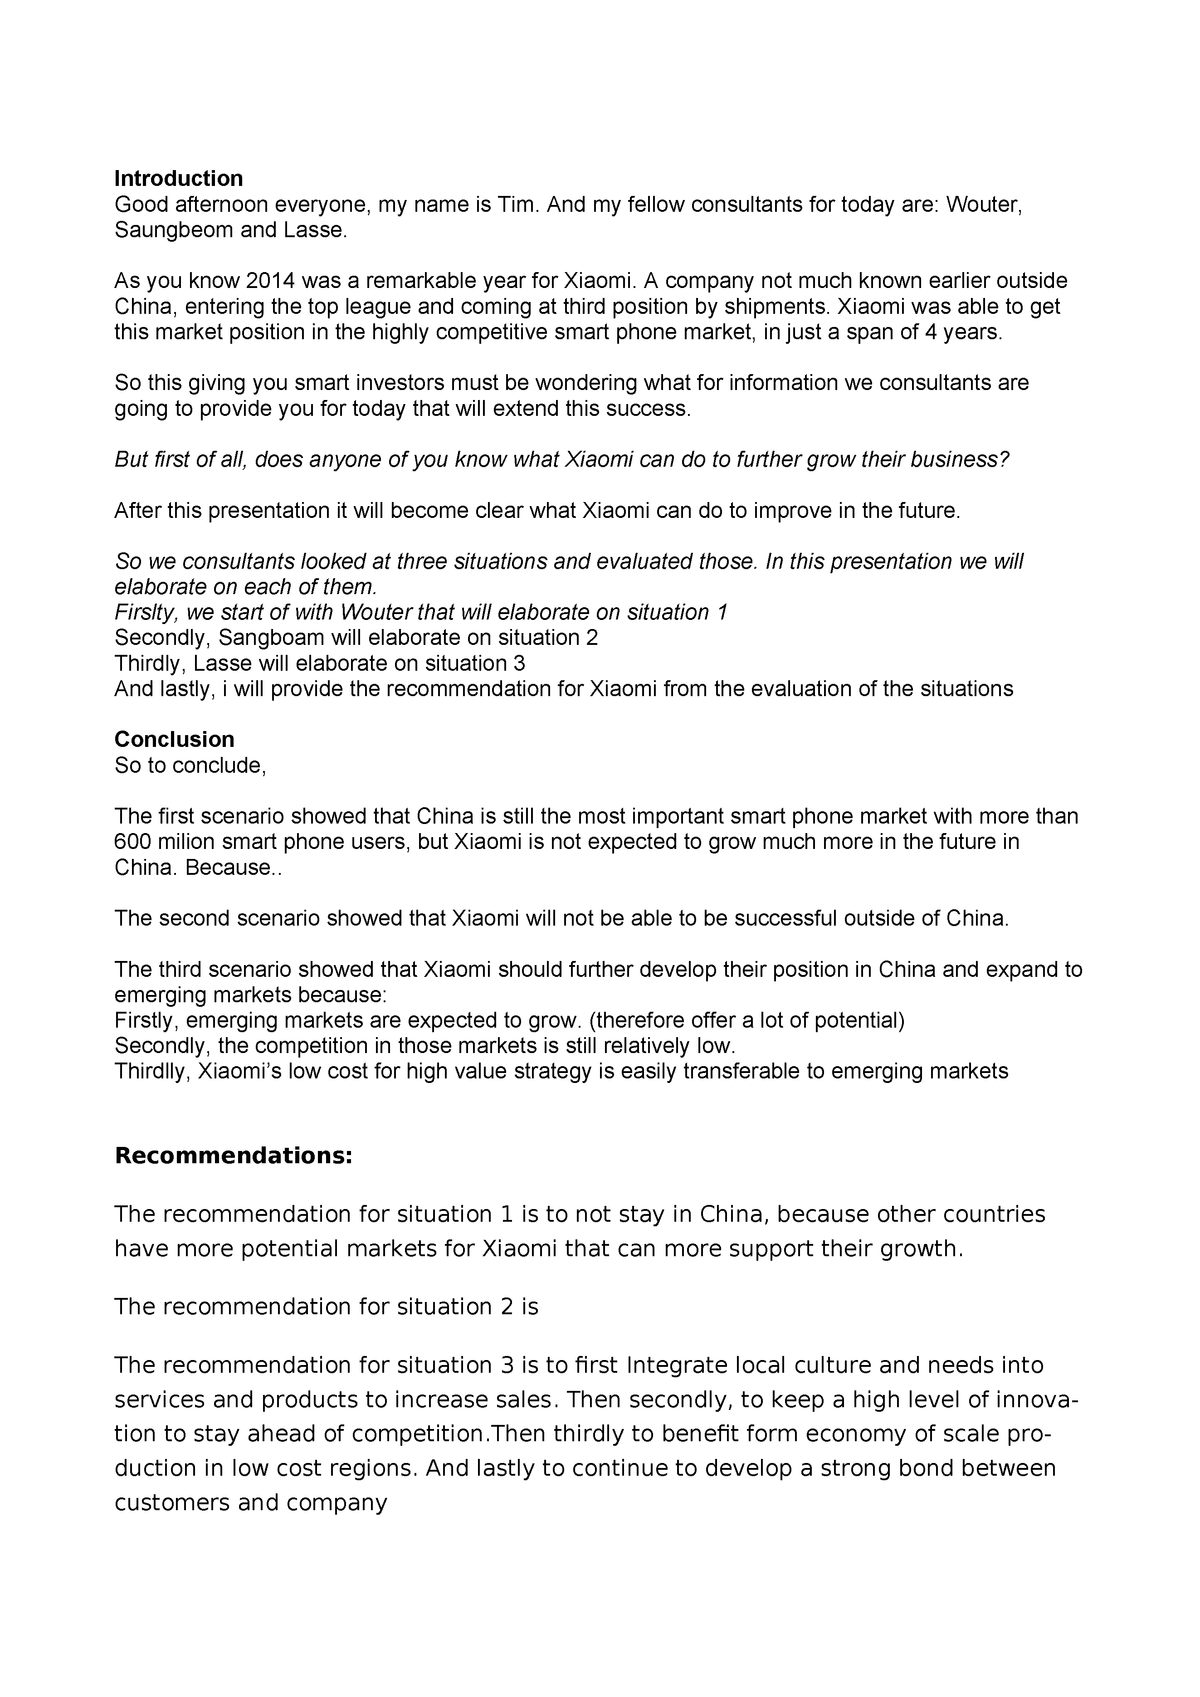 Conclusion And Recommendation For Business